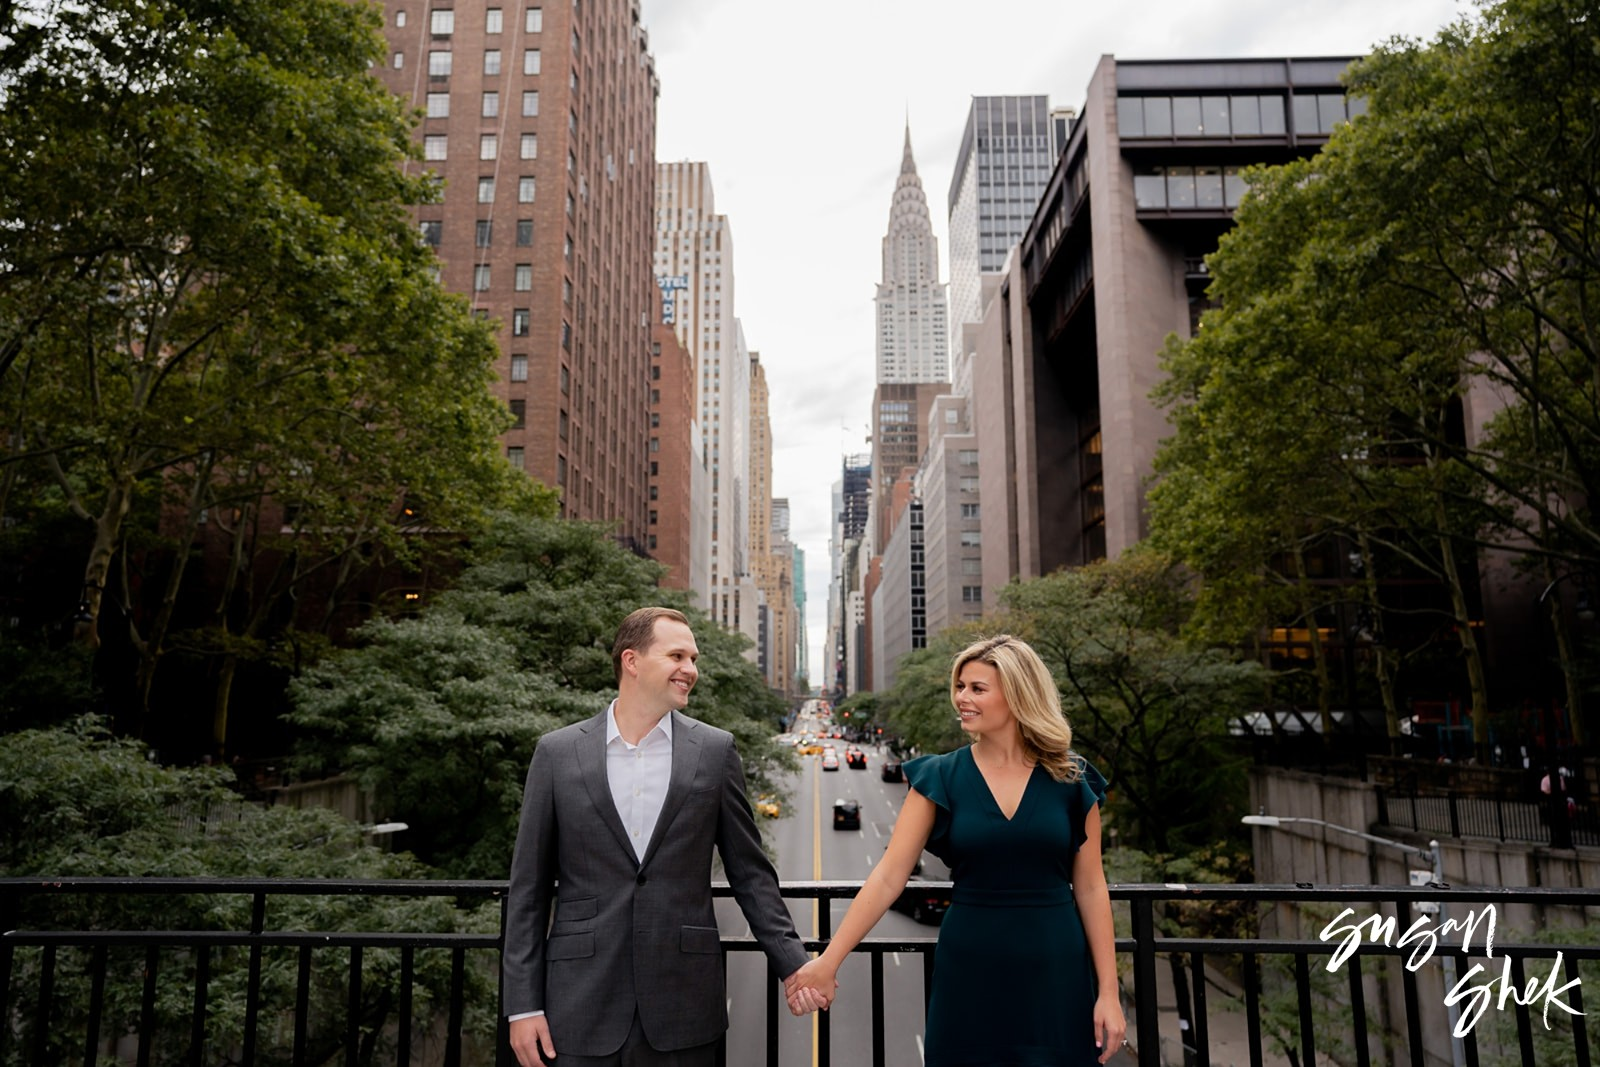 Tudor City, Engagement Shoot, NYC Engagement Photographer, Engagement Session, Engagement Photography, Engagement Photographer, NYC Wedding Photographer